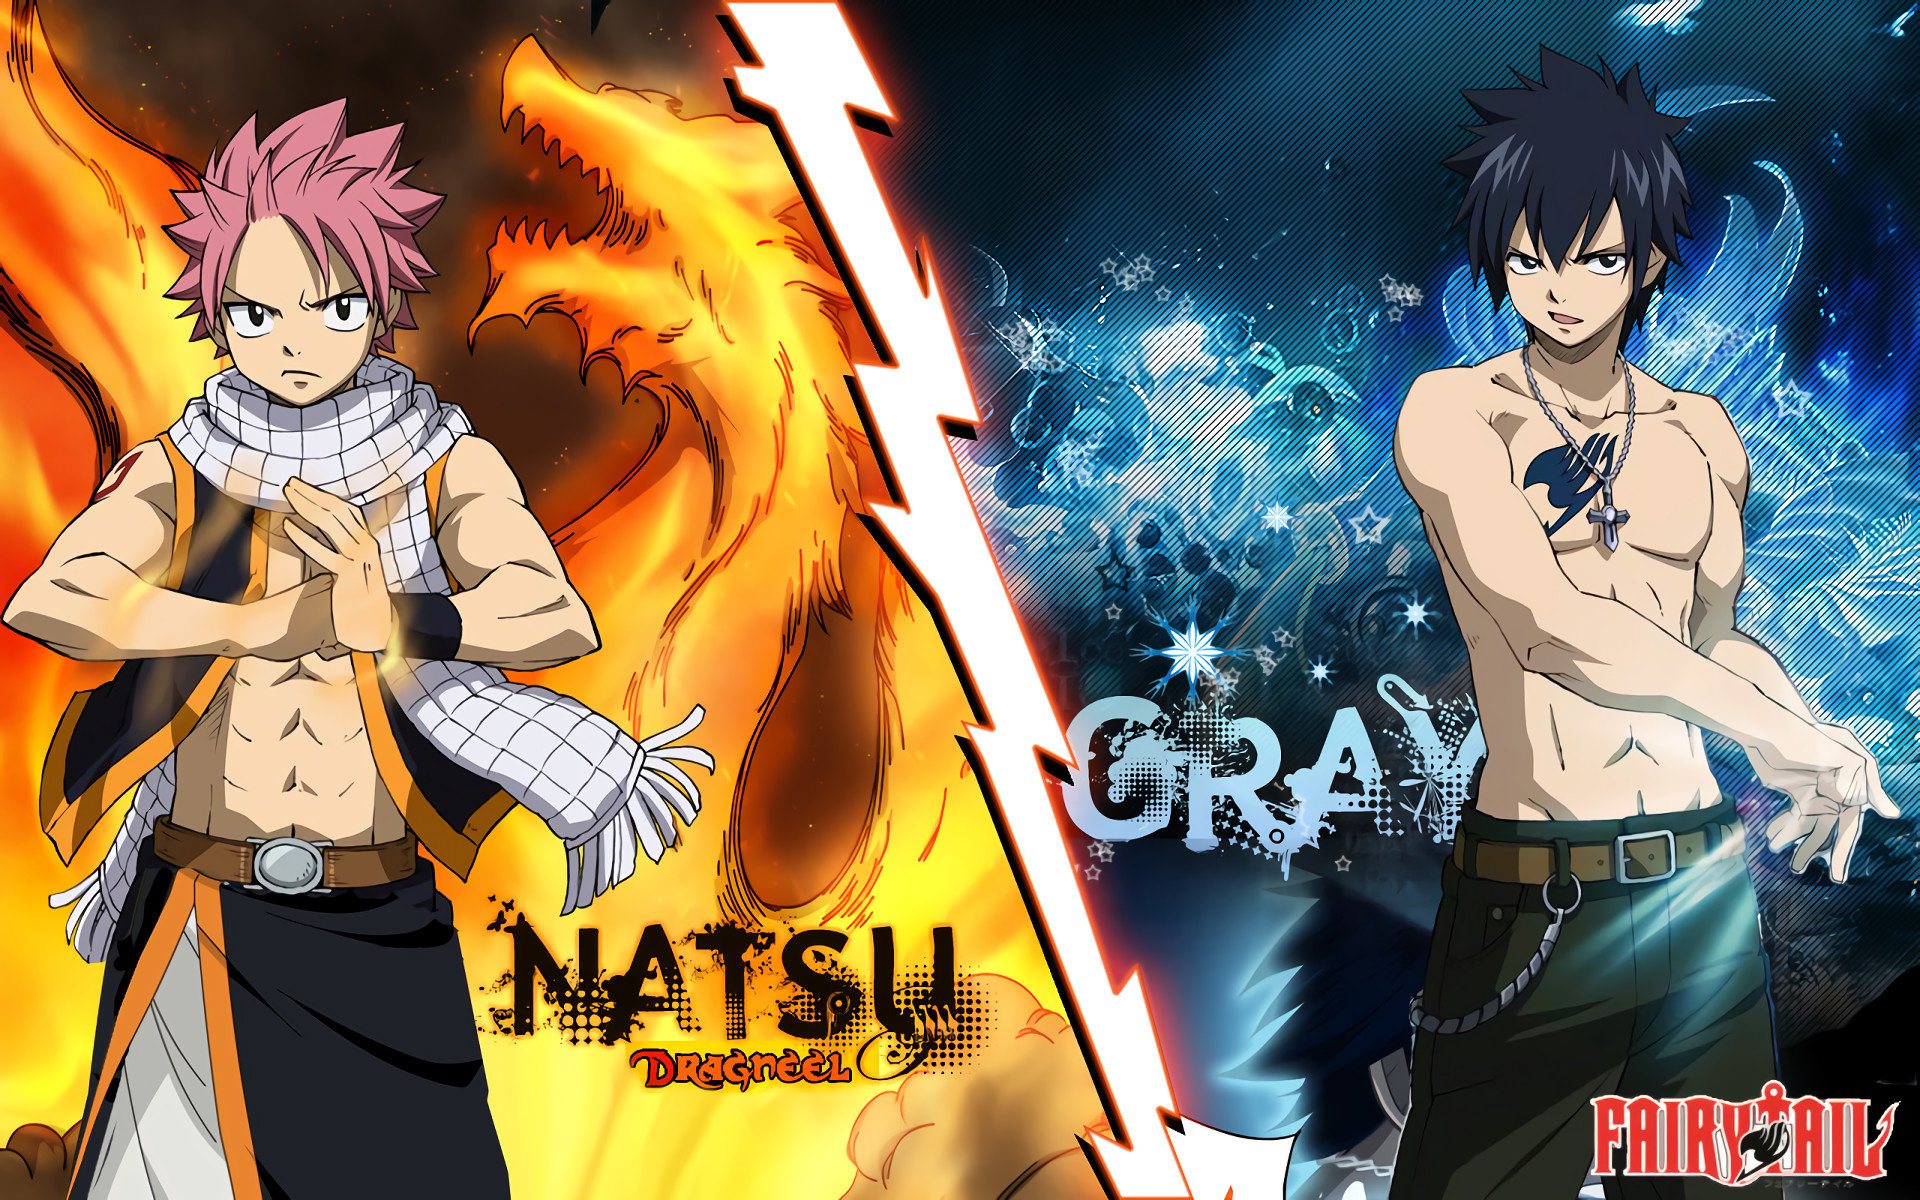 Download hd 1920x1200 Fairy Tail desktop wallpaper ID:41256 for free